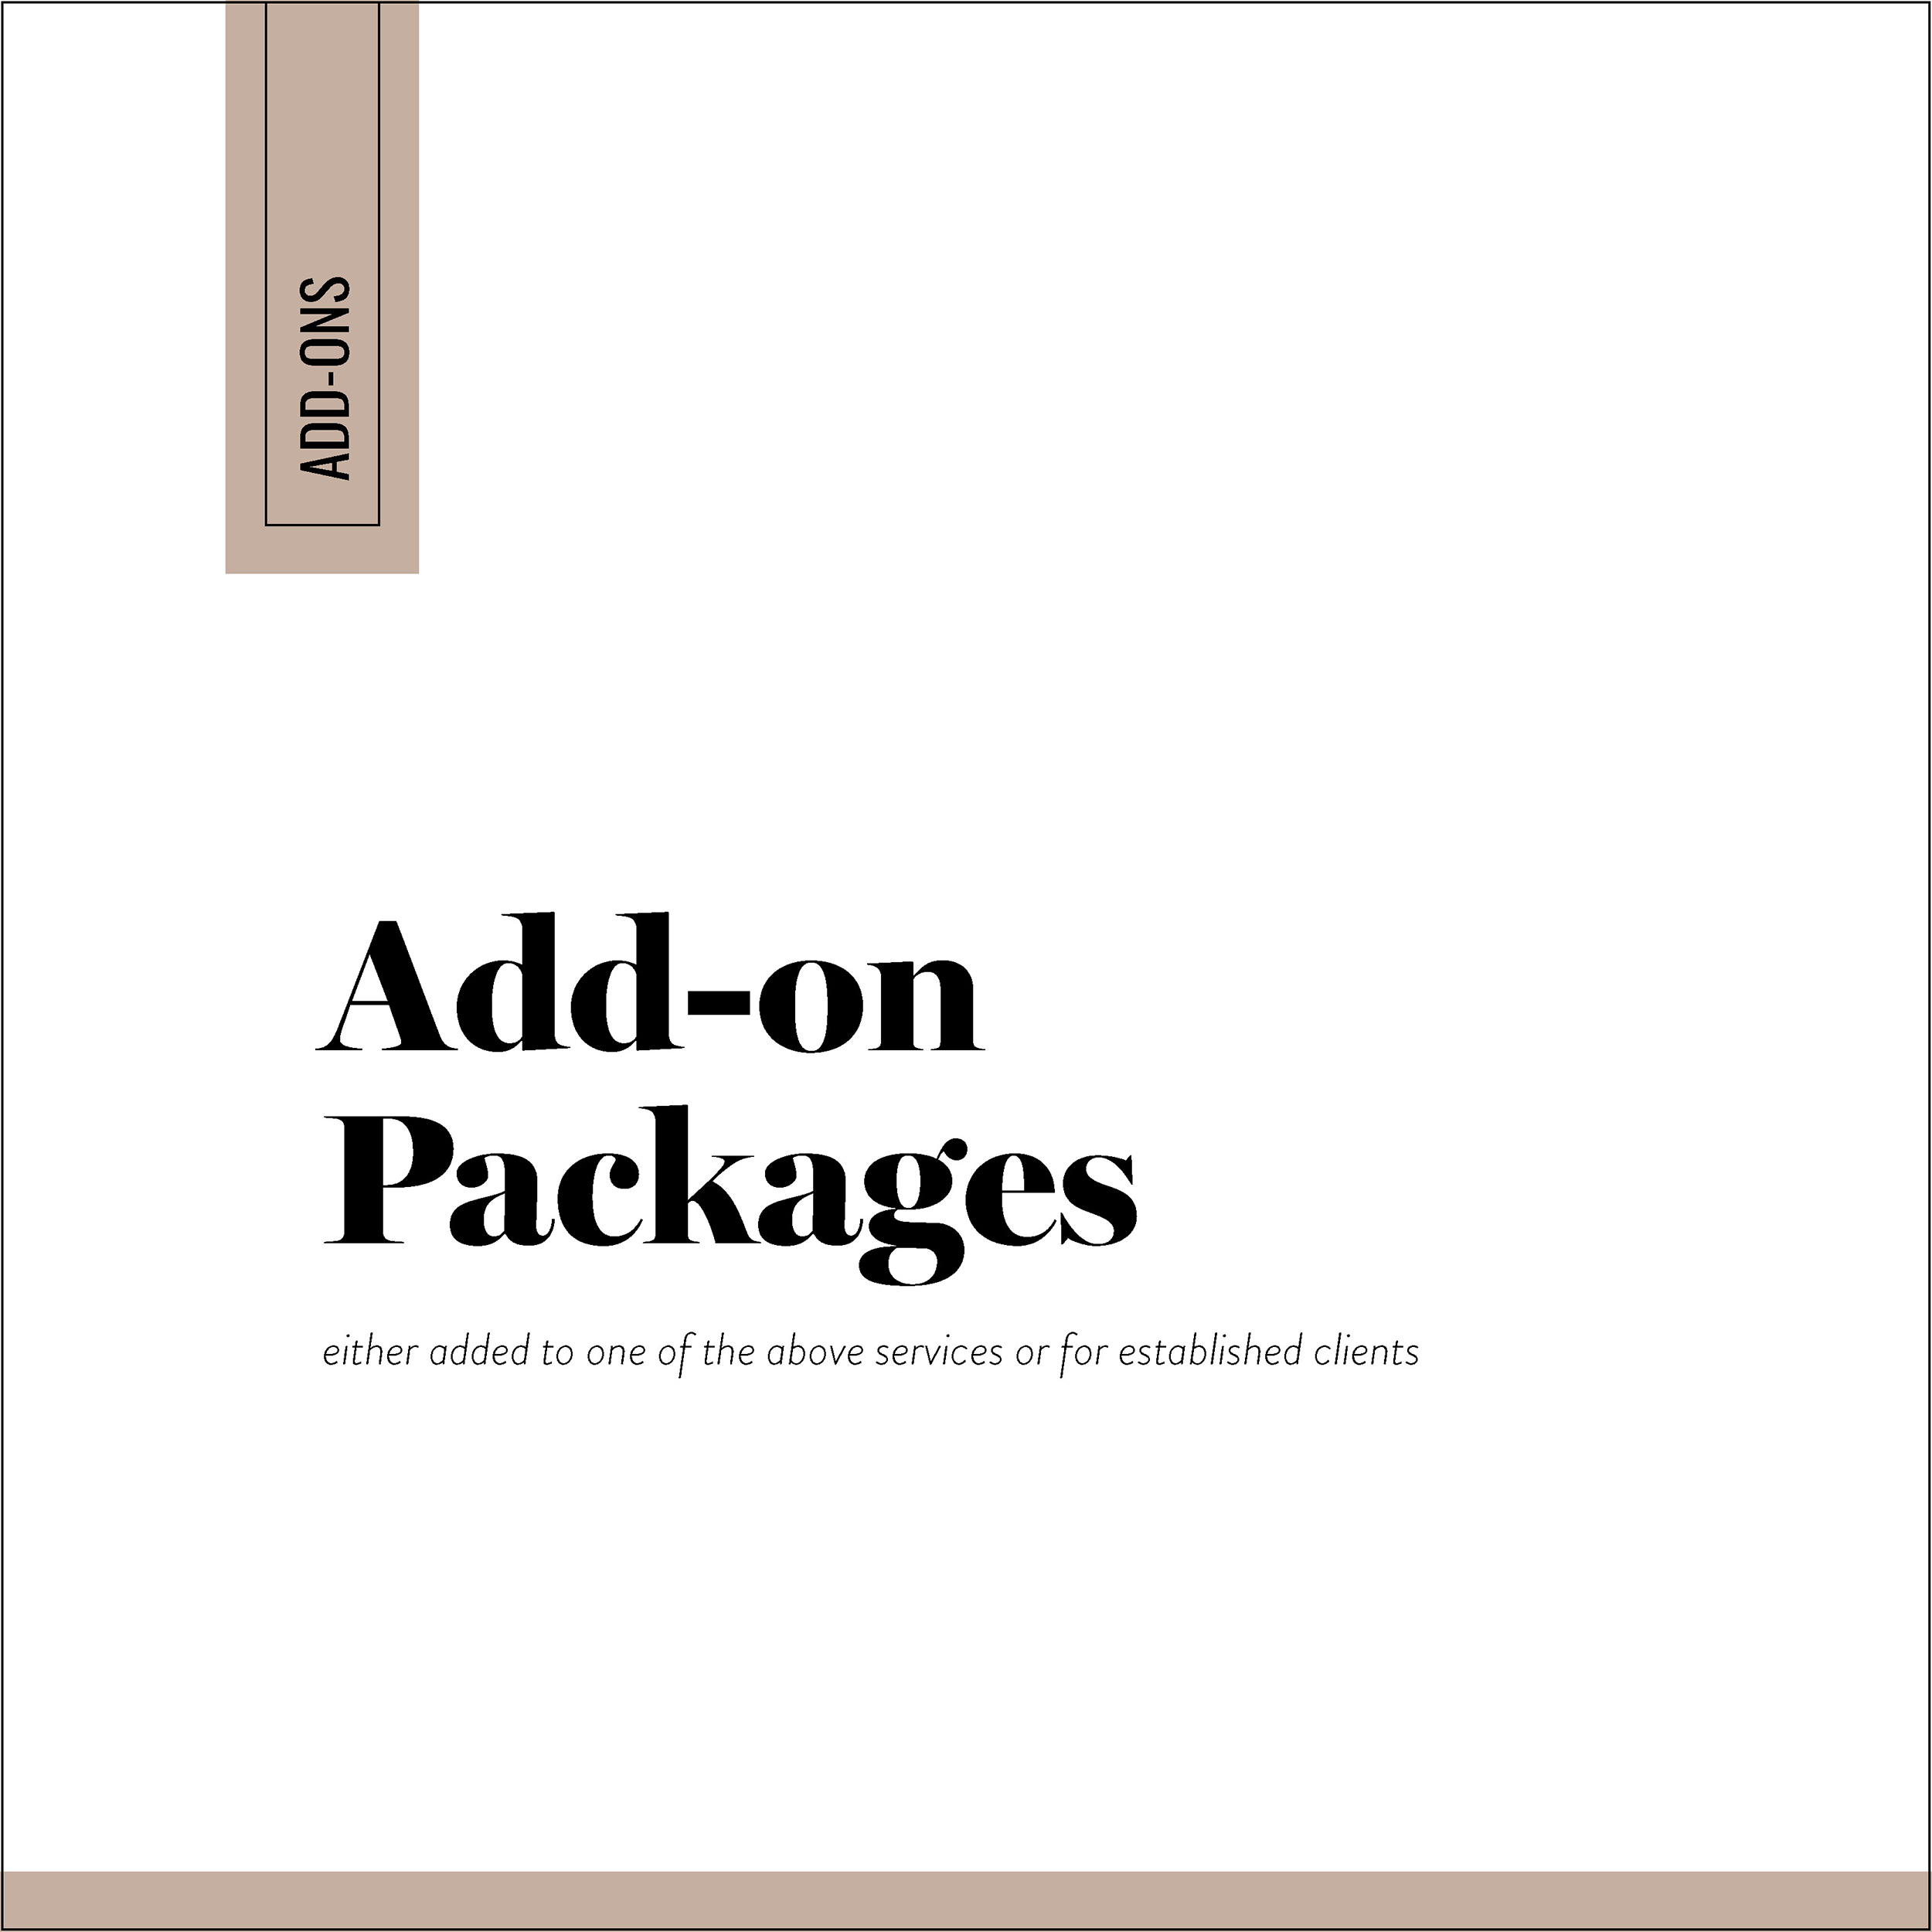 Add-On Packages - LOOKING FOR ADDITIONAL MARKETING COLLATERAL DESIGN?Here are a few options I provide as add-ons. Please Note: These are only available when choosing one of the above listed packages or for established clients. I do not offer these as standalone services.• digital/social marketing collateral• direct mail campaigns• event signage• event collateral• newspaper/magazine ads